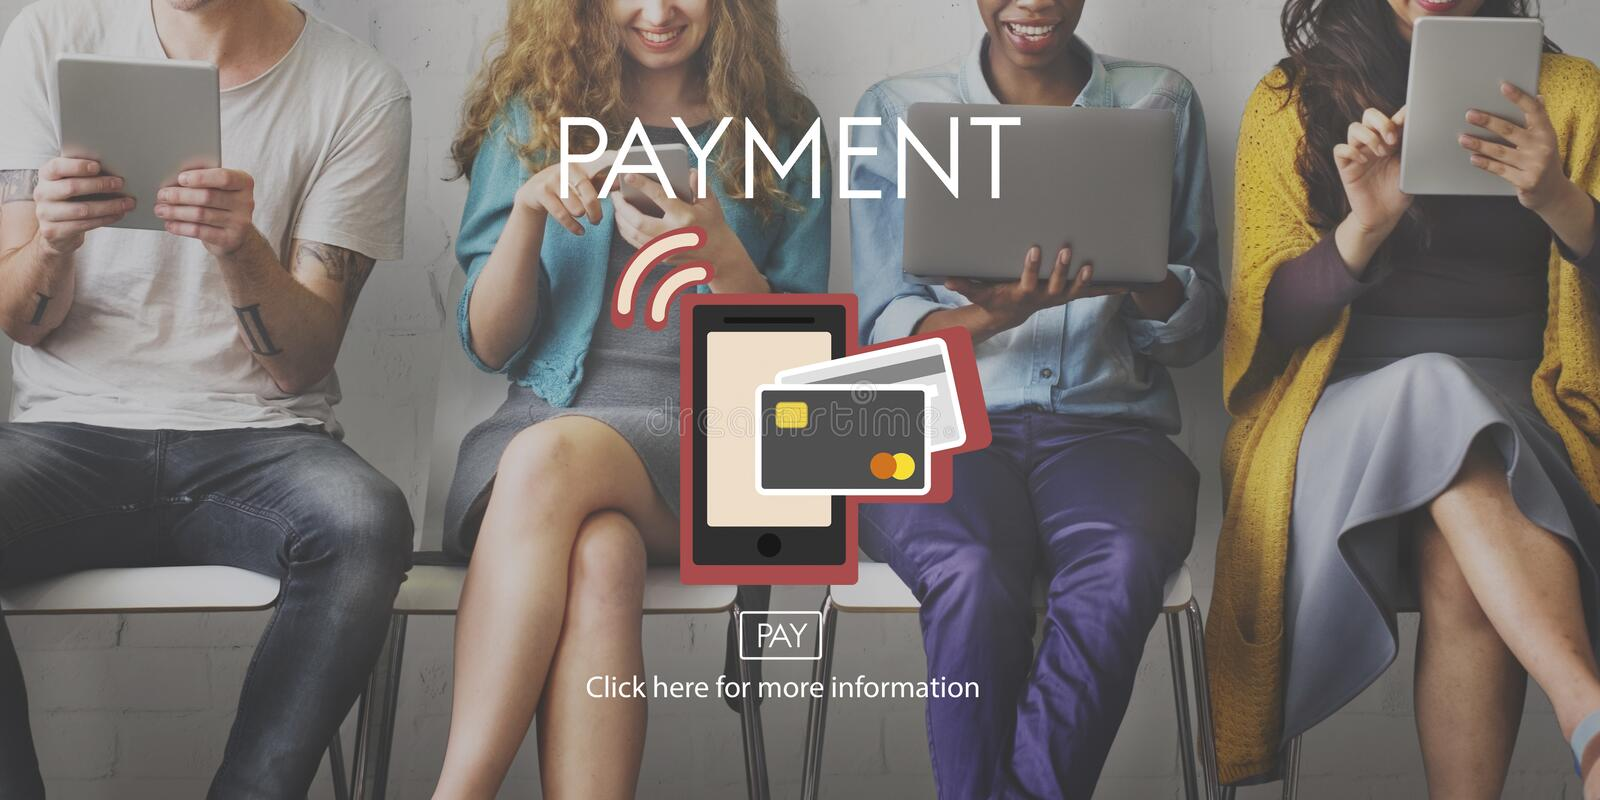 Payment NFC Near Field Communication Mobiel Wallet Online Concept. Diverse people using tablet word payment royalty free stock images